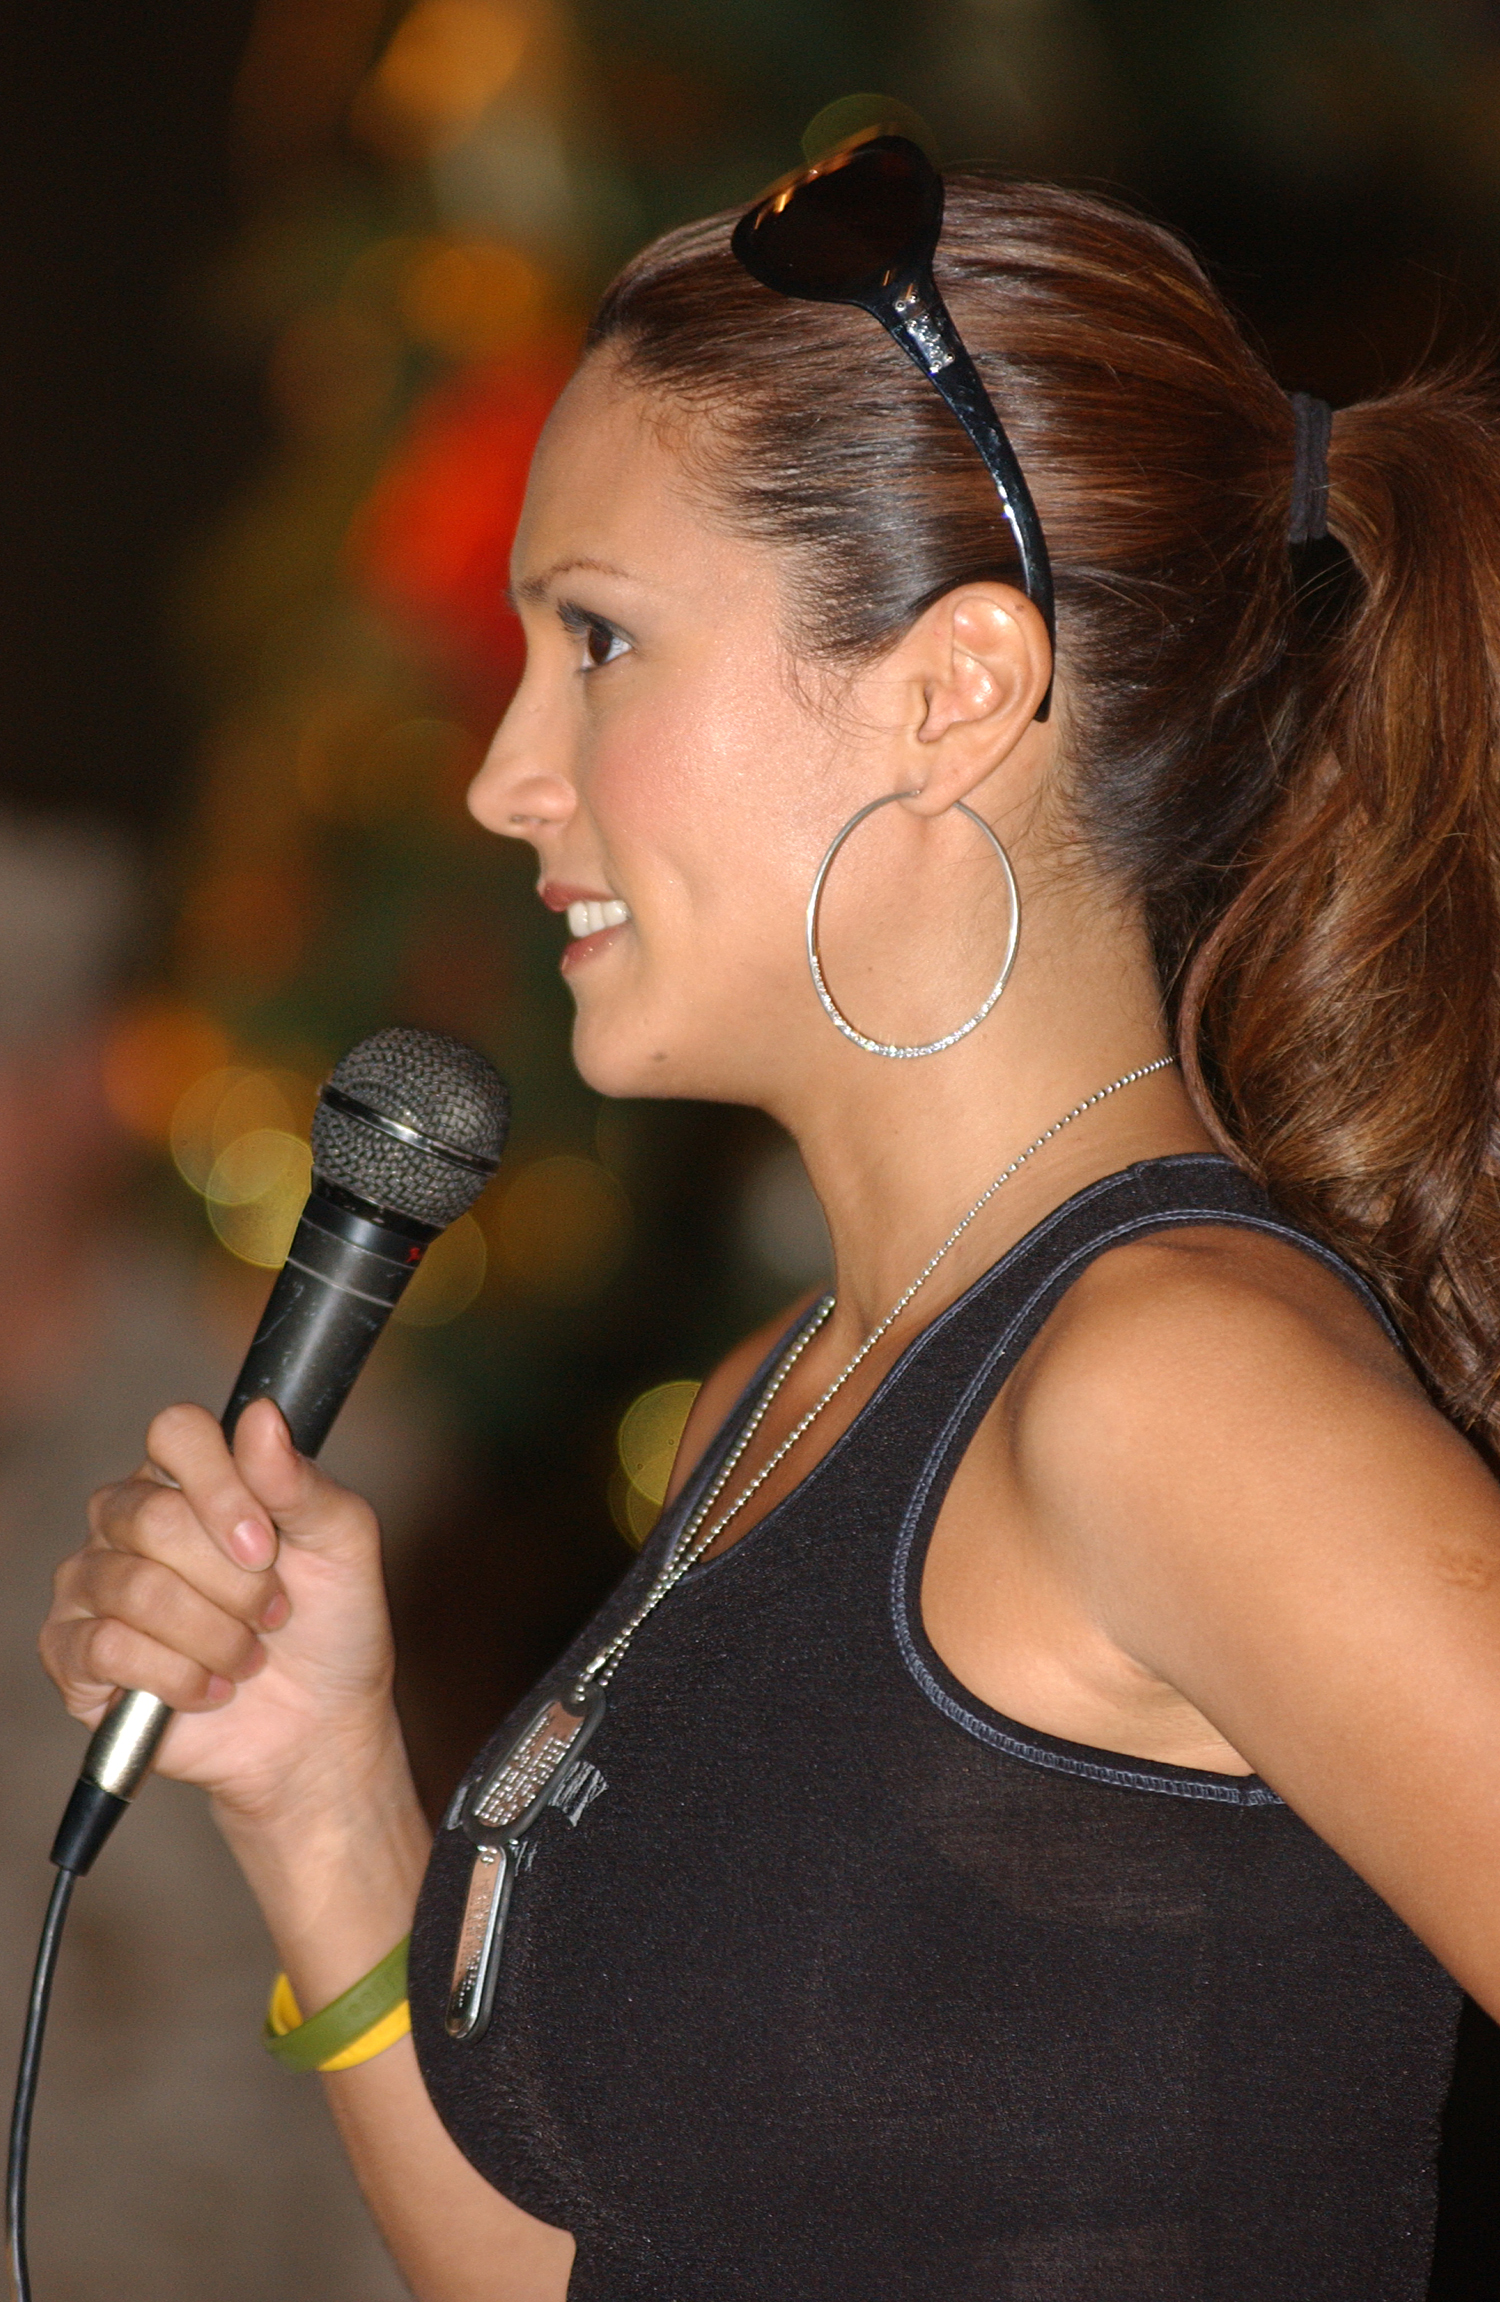 Pics Of Leeann Tweeden